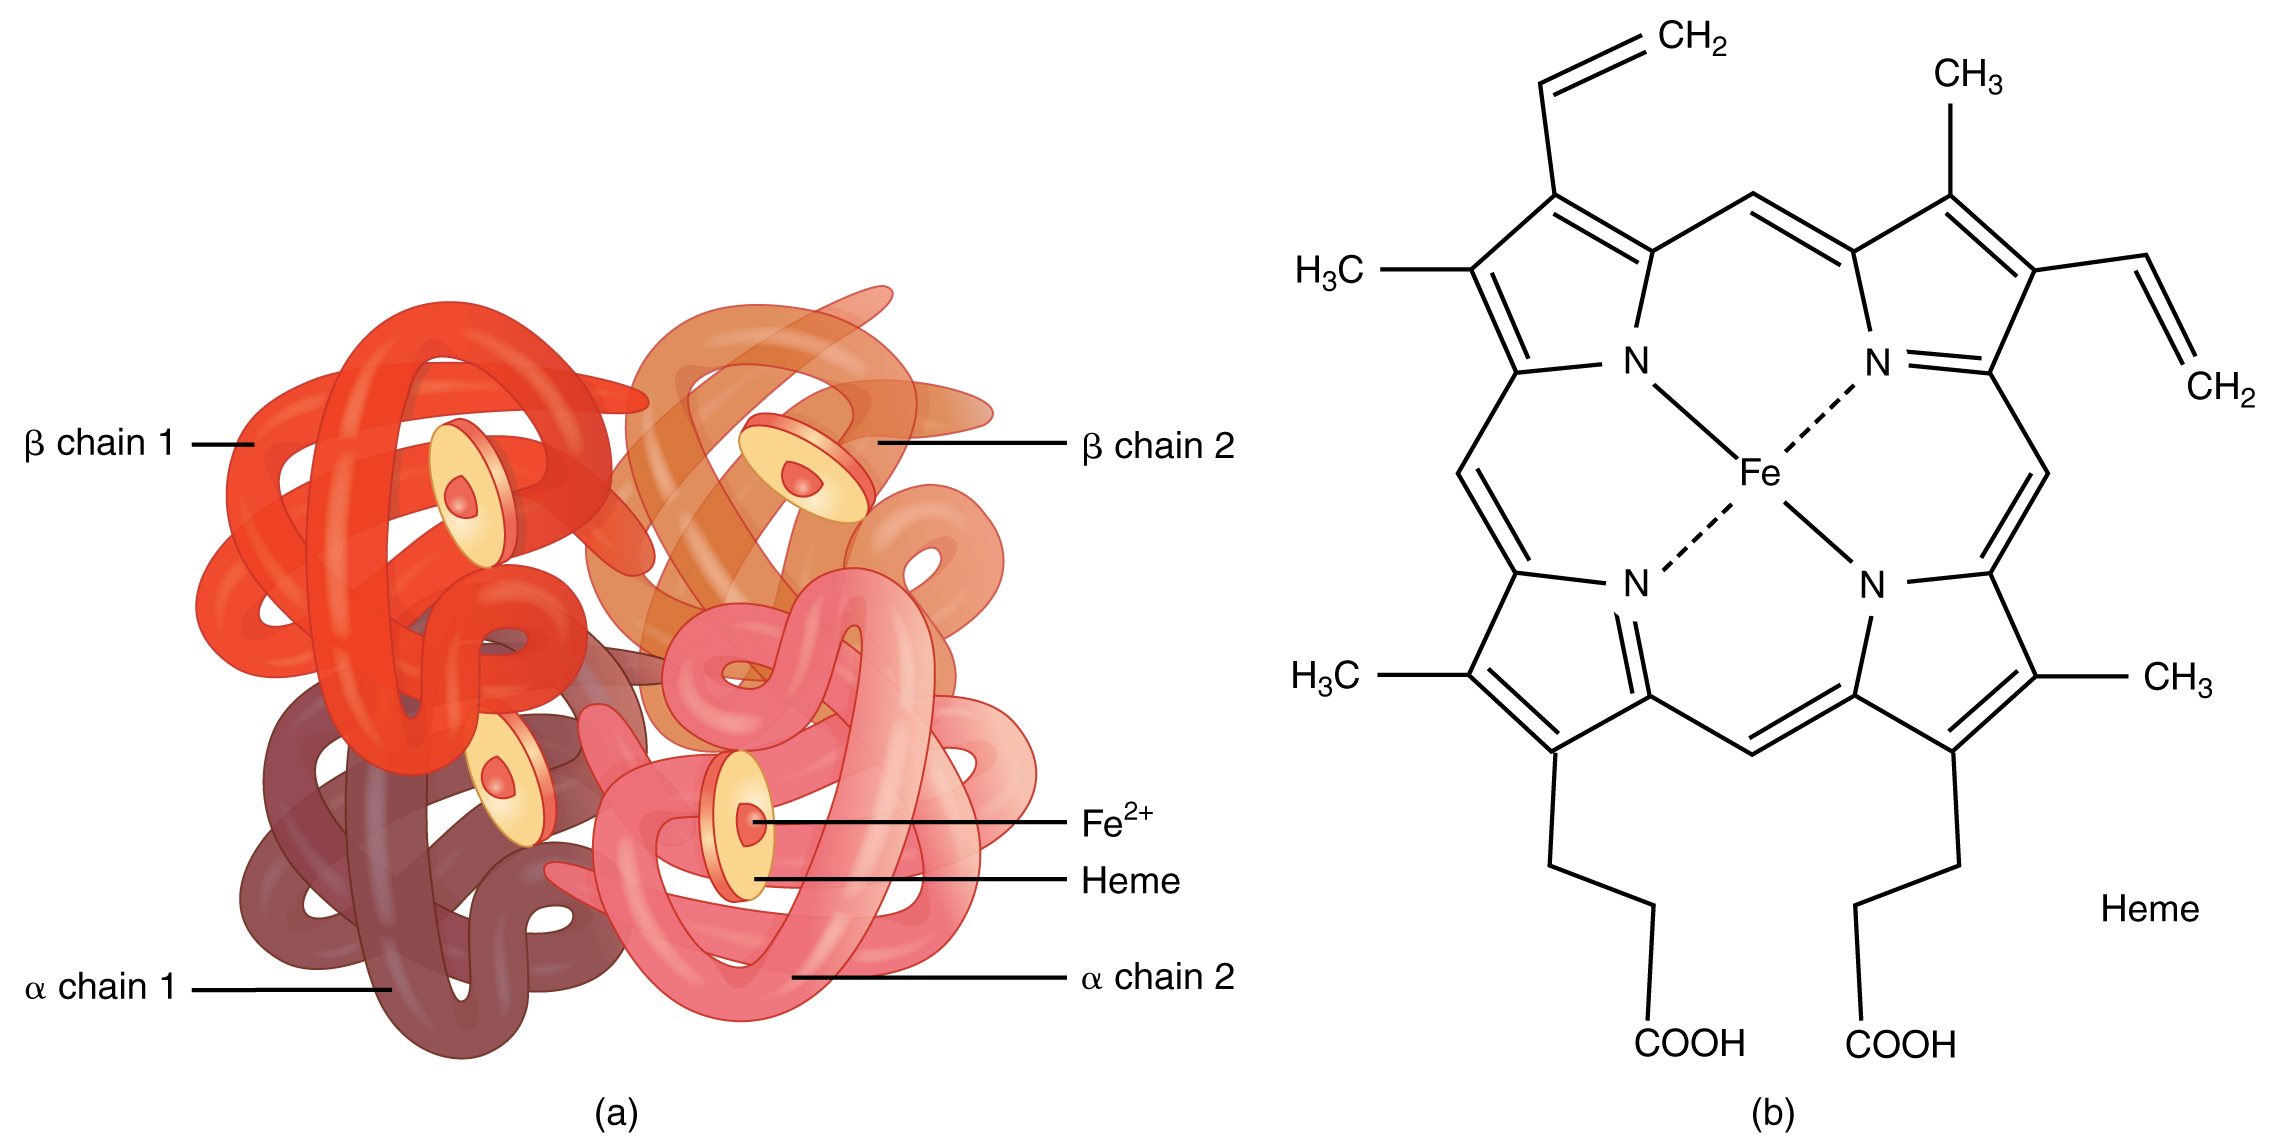 This figure shows the structure of hemoglobin. The left panel shows the protein structure and the right panel shows the chemical formula.